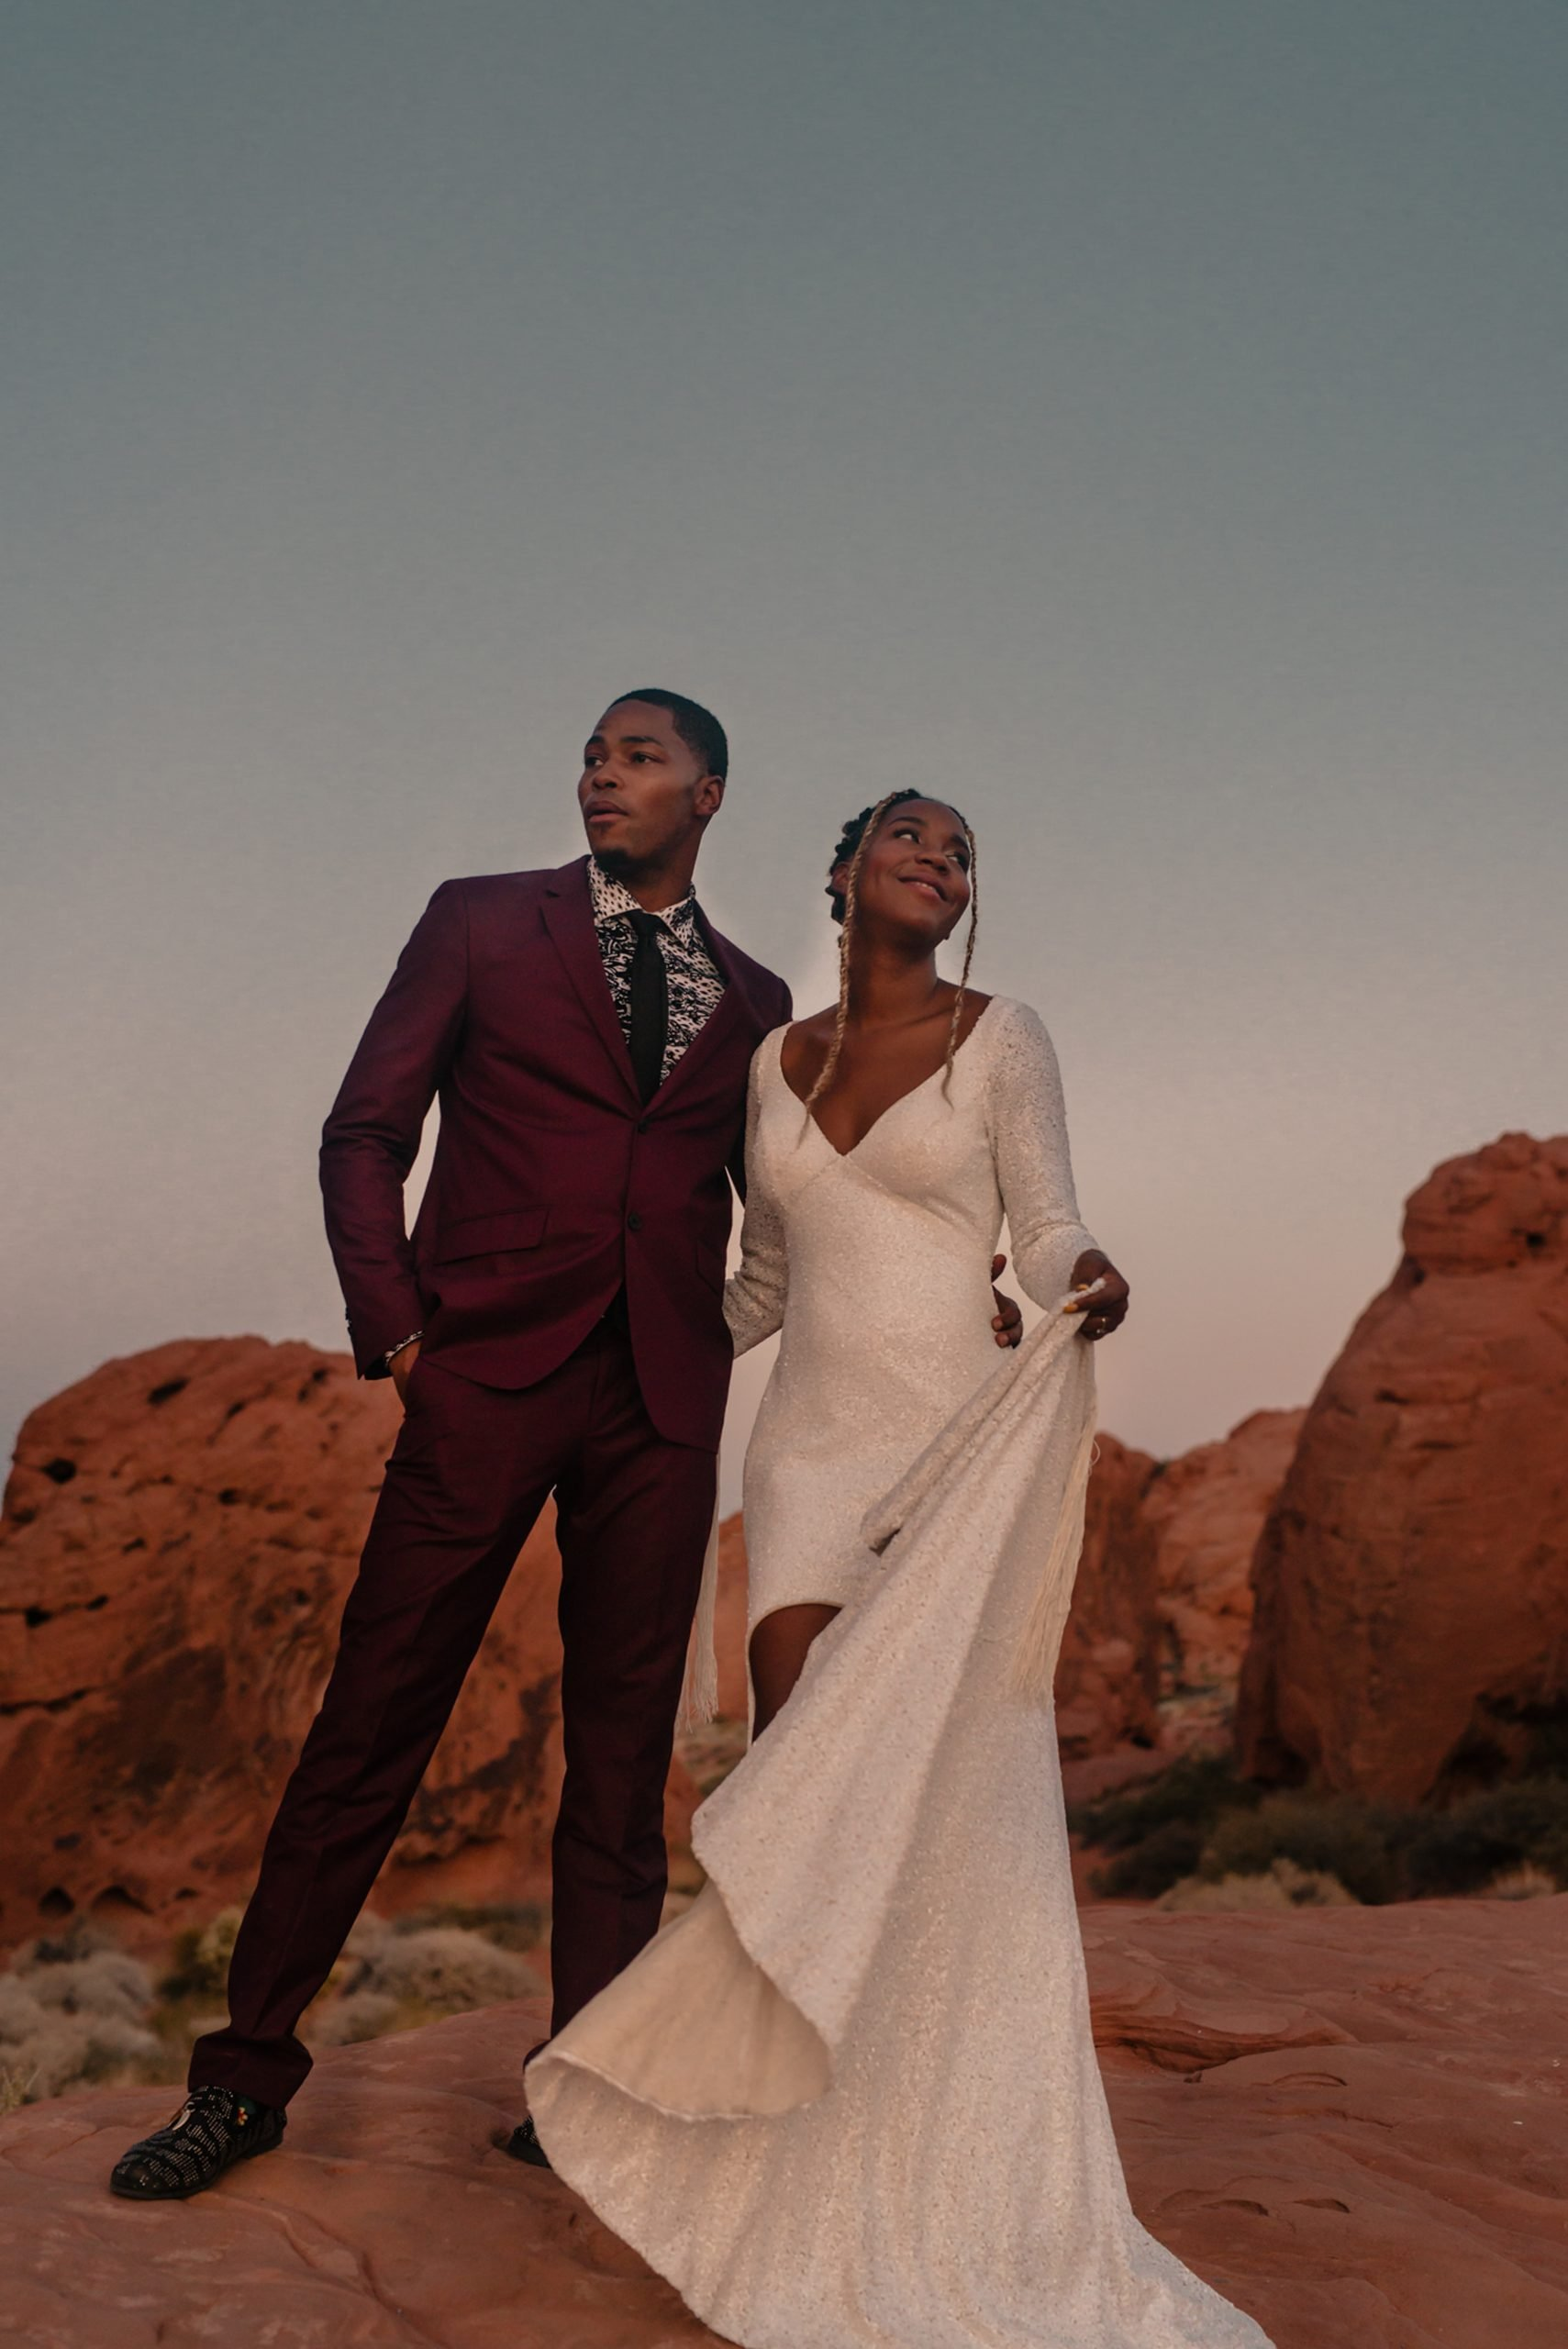 joni by shikoba bride wearing Sequin boho wedding dress in the valley of fire by Shikoba Bride image by Marissa Rose Photography